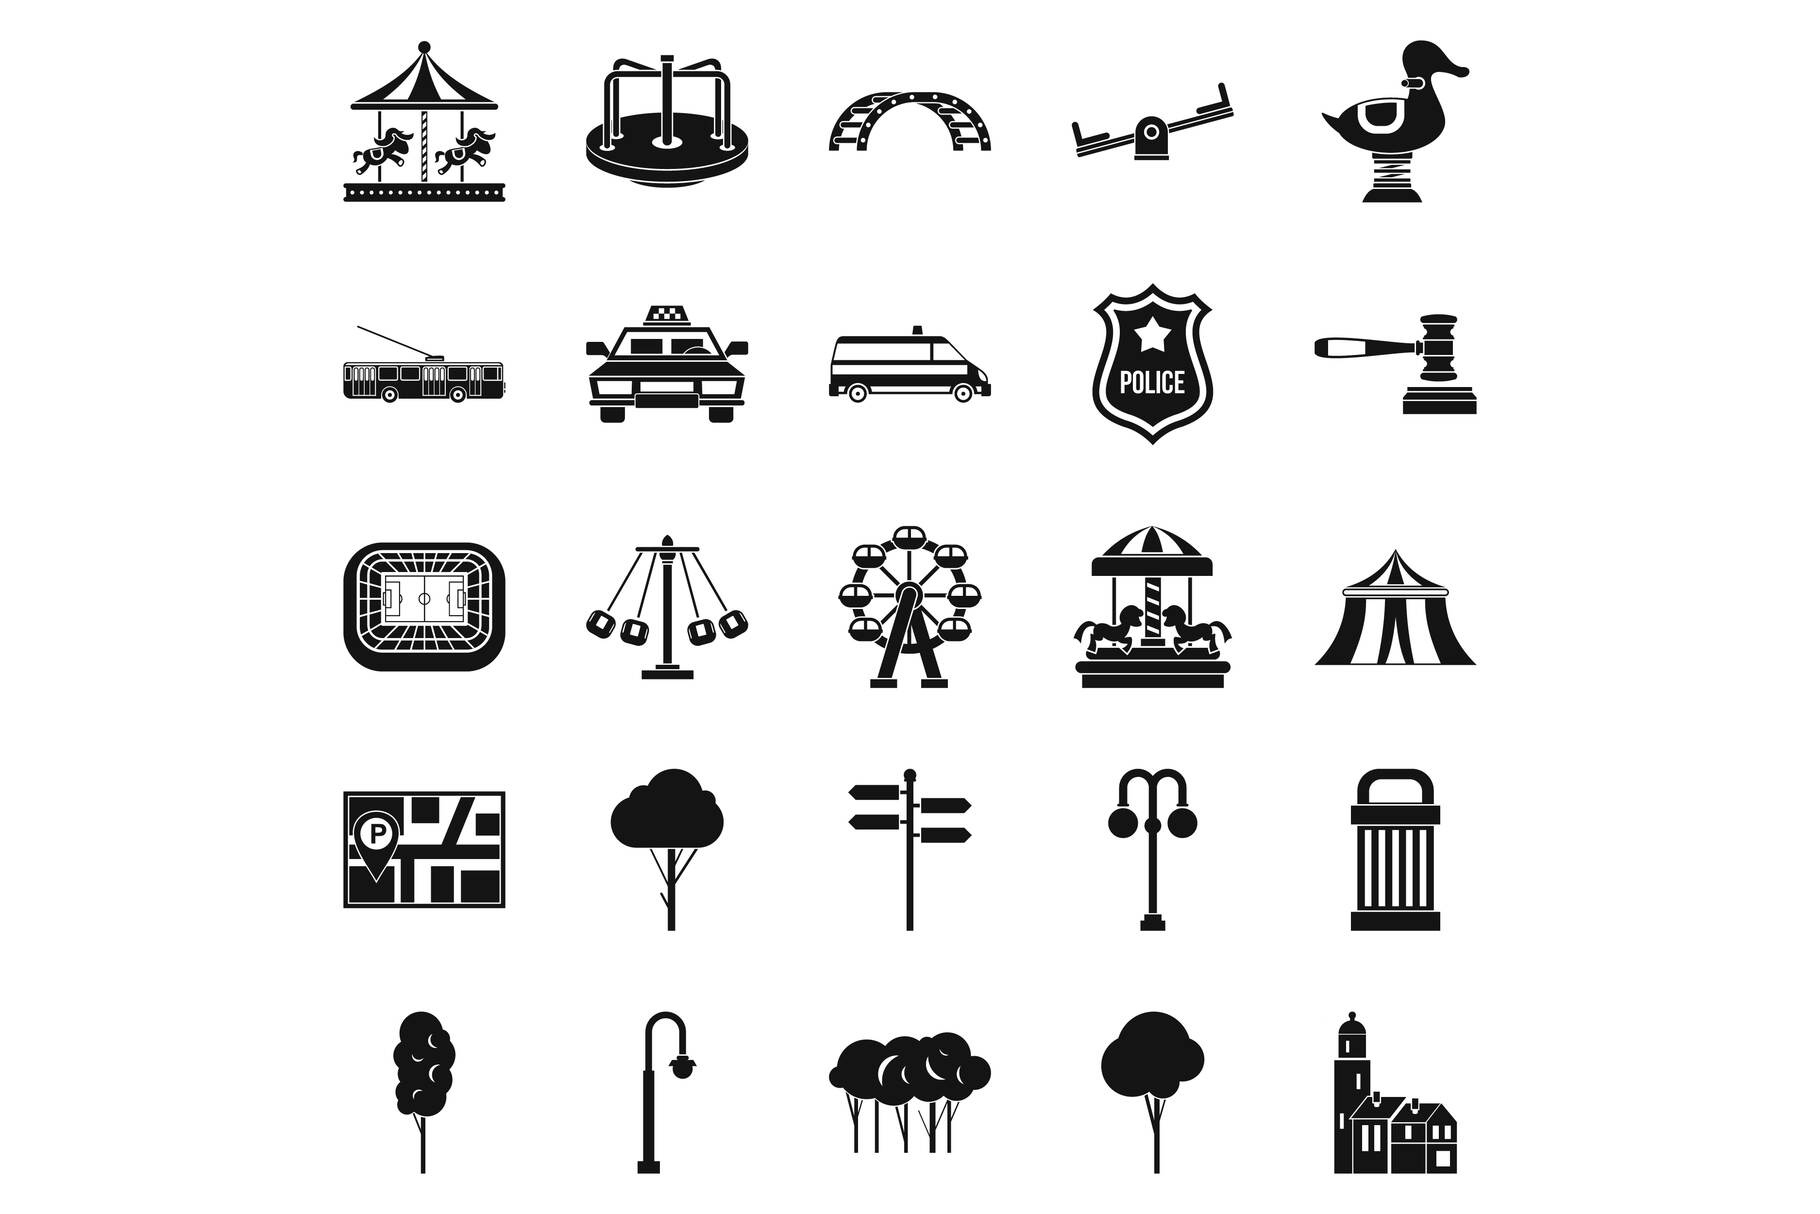 Urban recreation park icons set, simple style example image 1